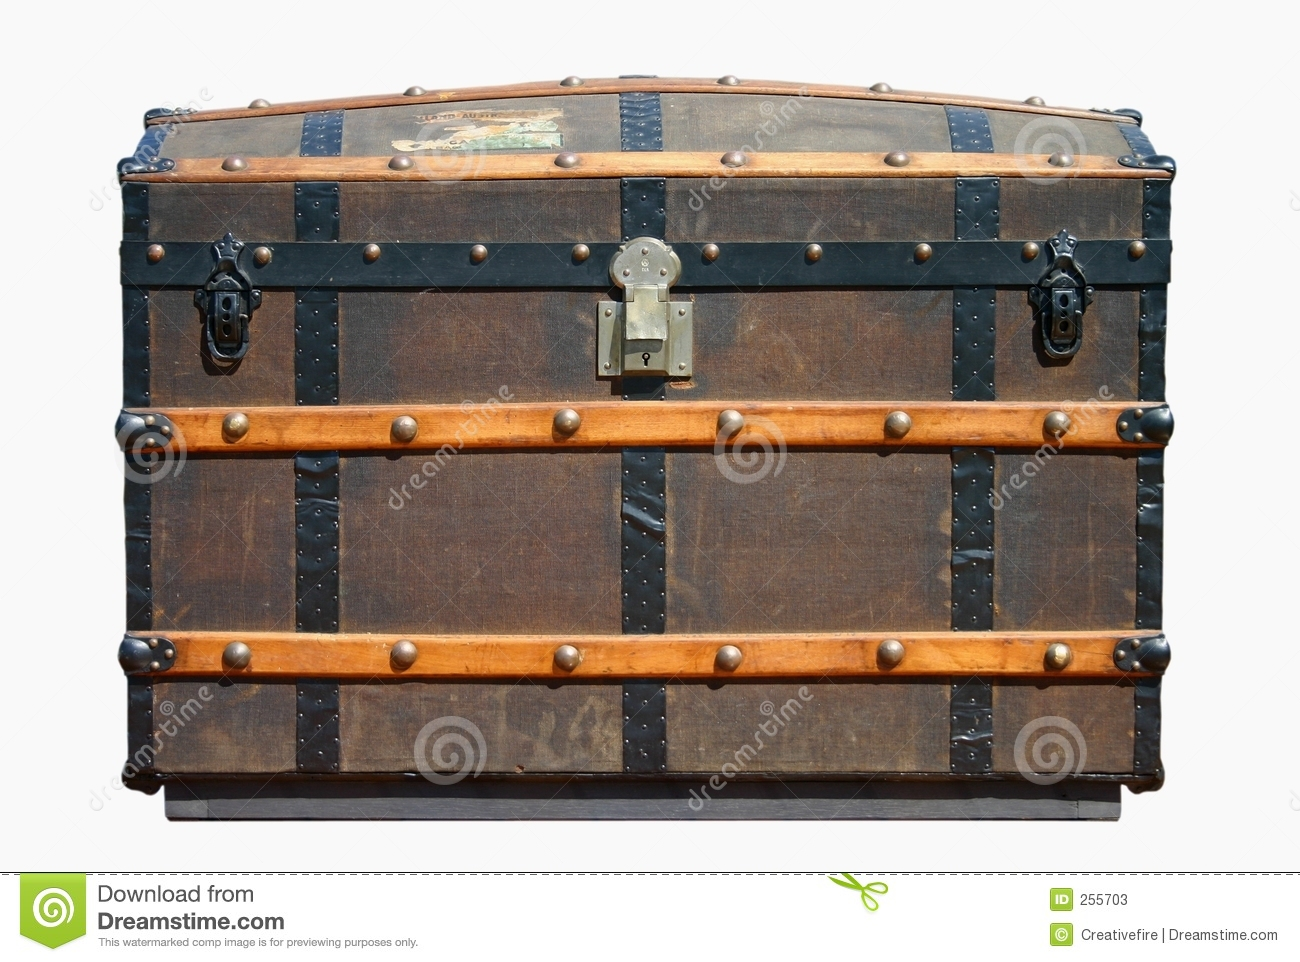 Old travel trunk (isolated against white background).